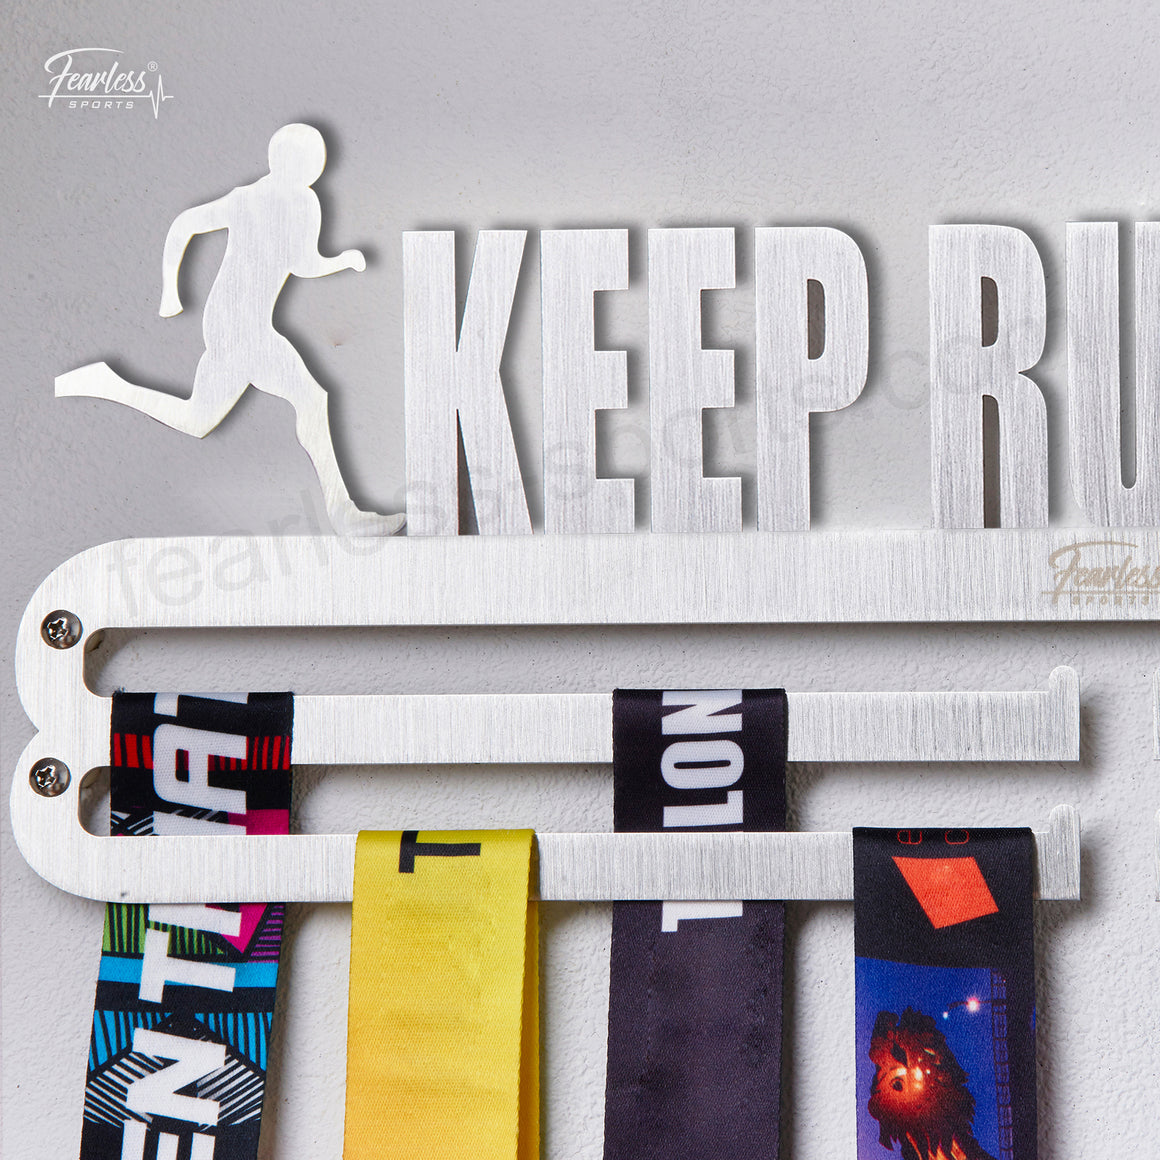 Keep Rumming Man Stainless Steel Medal Display Hanger ITM./ART.5174 - Fearless Sports